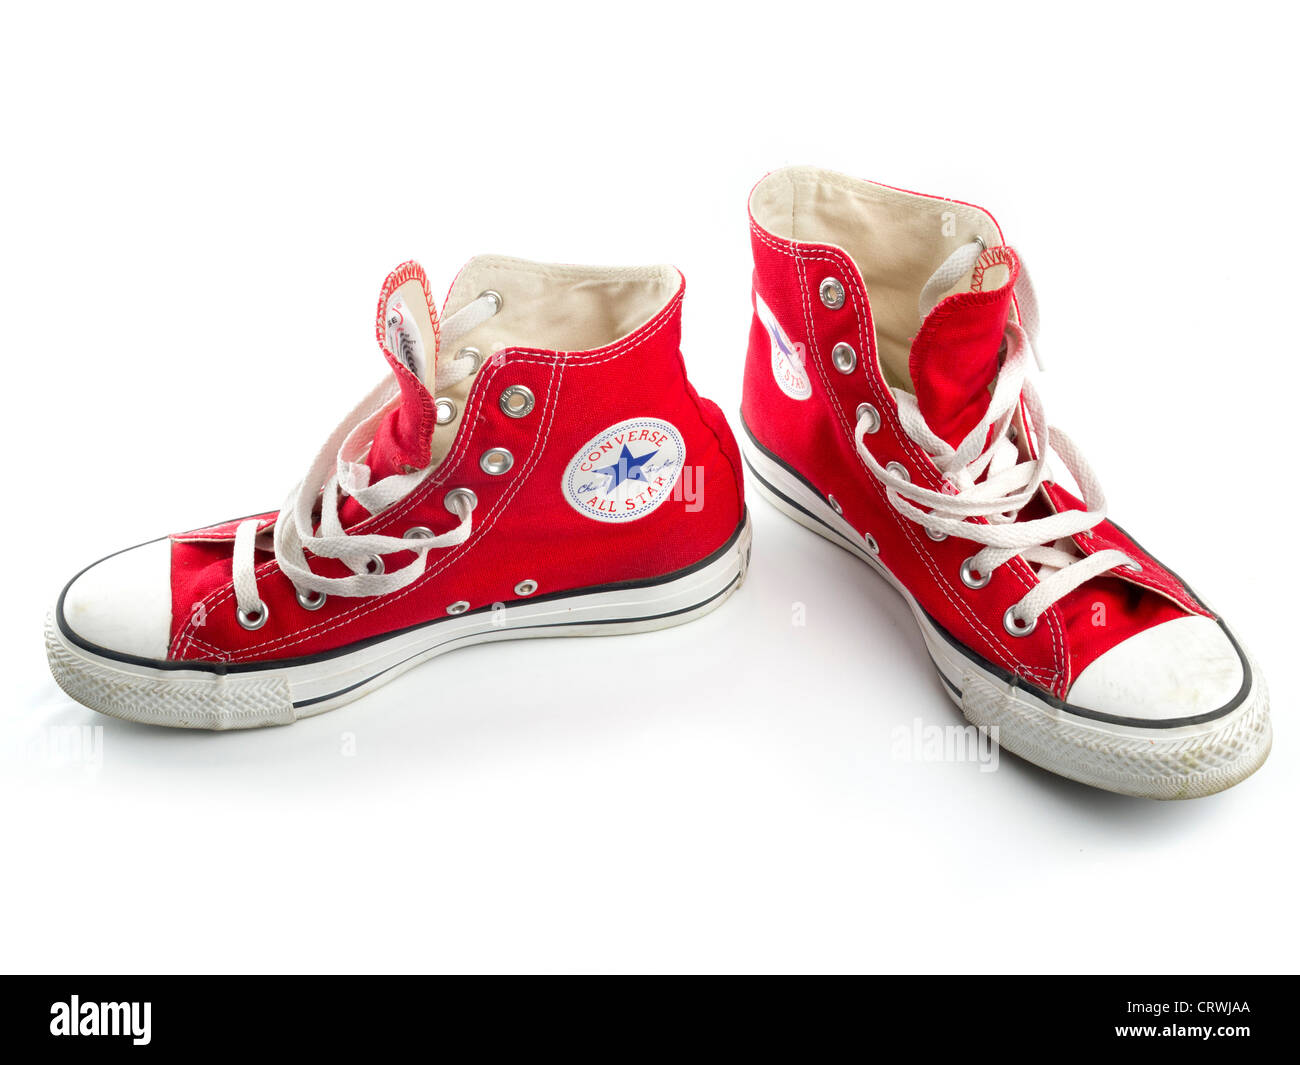 Red Converse Chuck Taylor All Star shoe pair - Stock Image